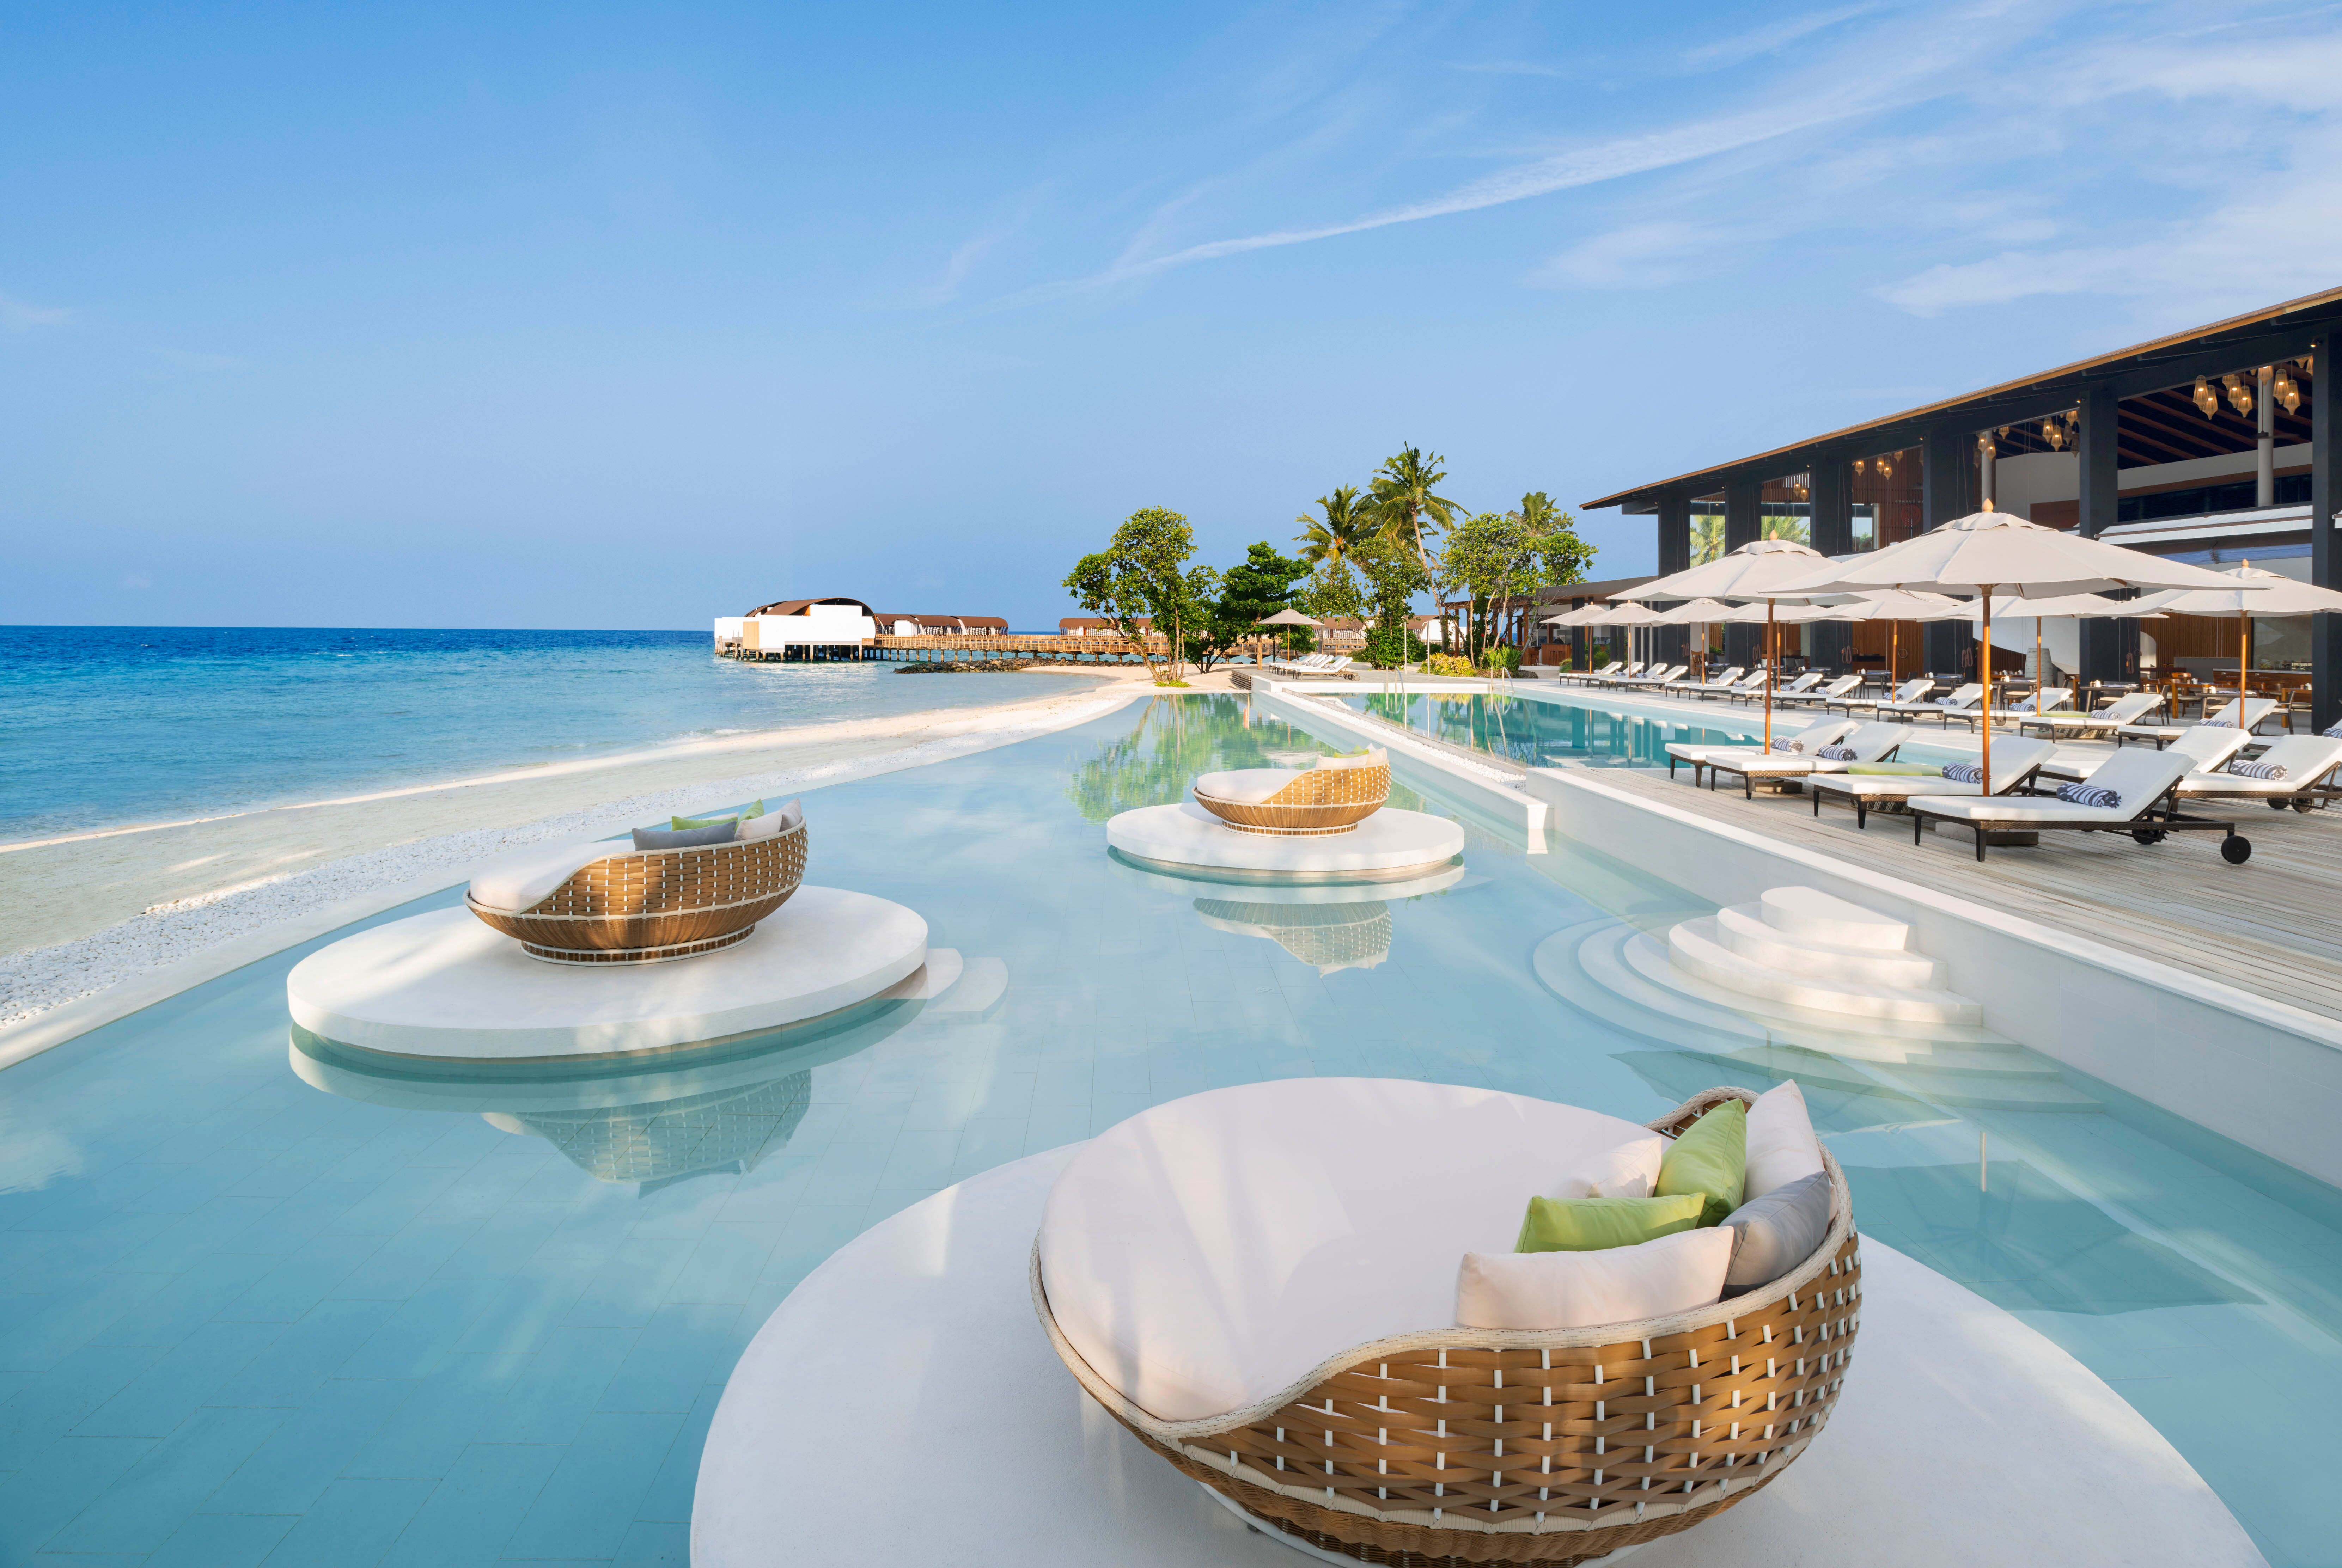 http://highend-traveller.com/the-westin-maldives-miriandhoo-resort-offers-ultimate-wellness-on-the-tropical-archipelago-oasis/